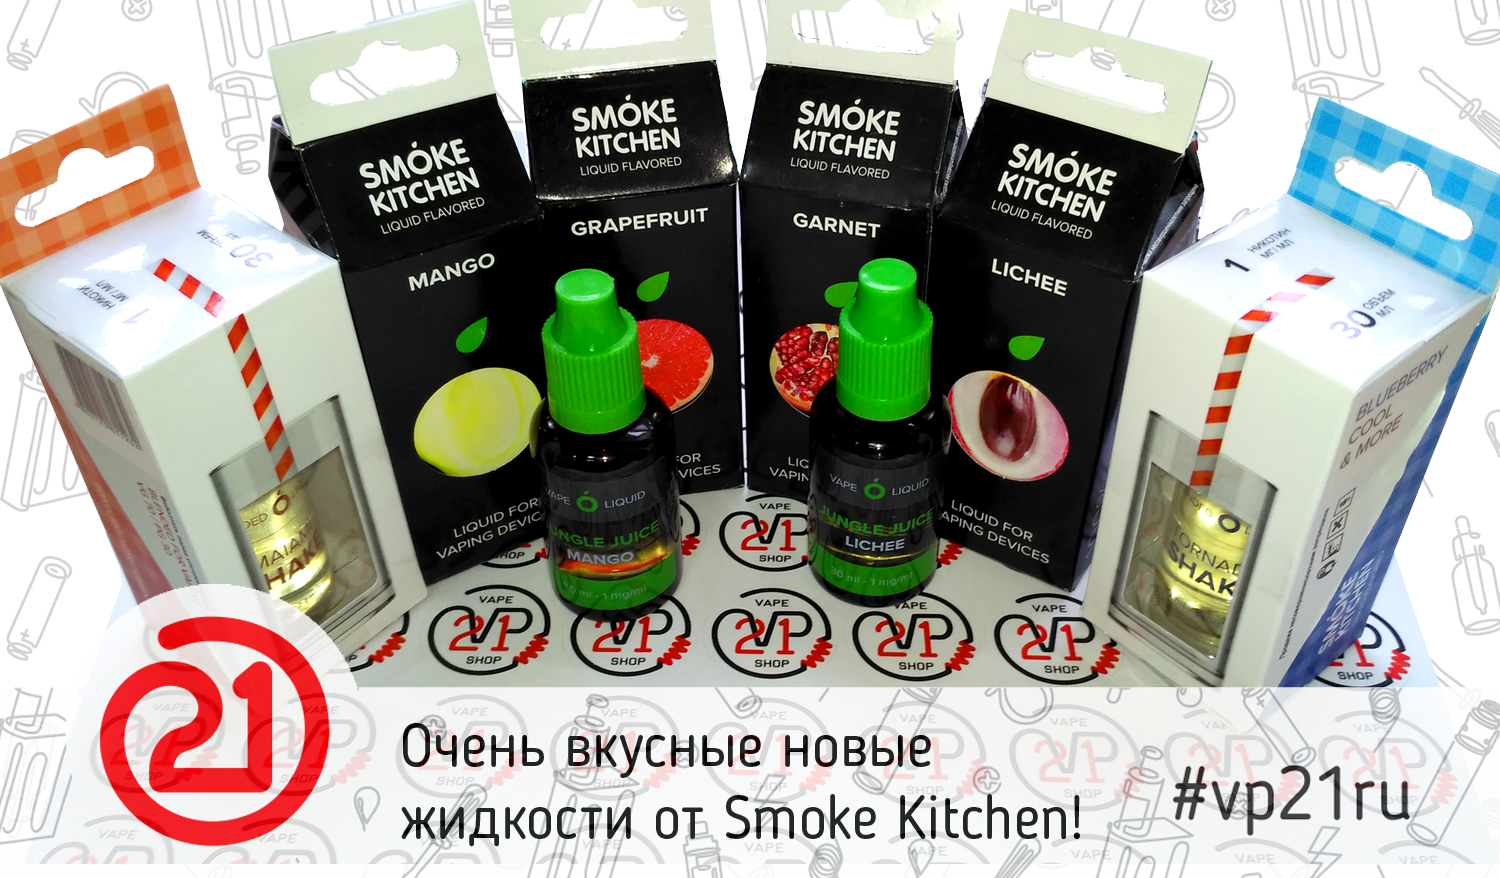 vp21-ru-novye-zhidkosti-smoke-kitchen.jpg